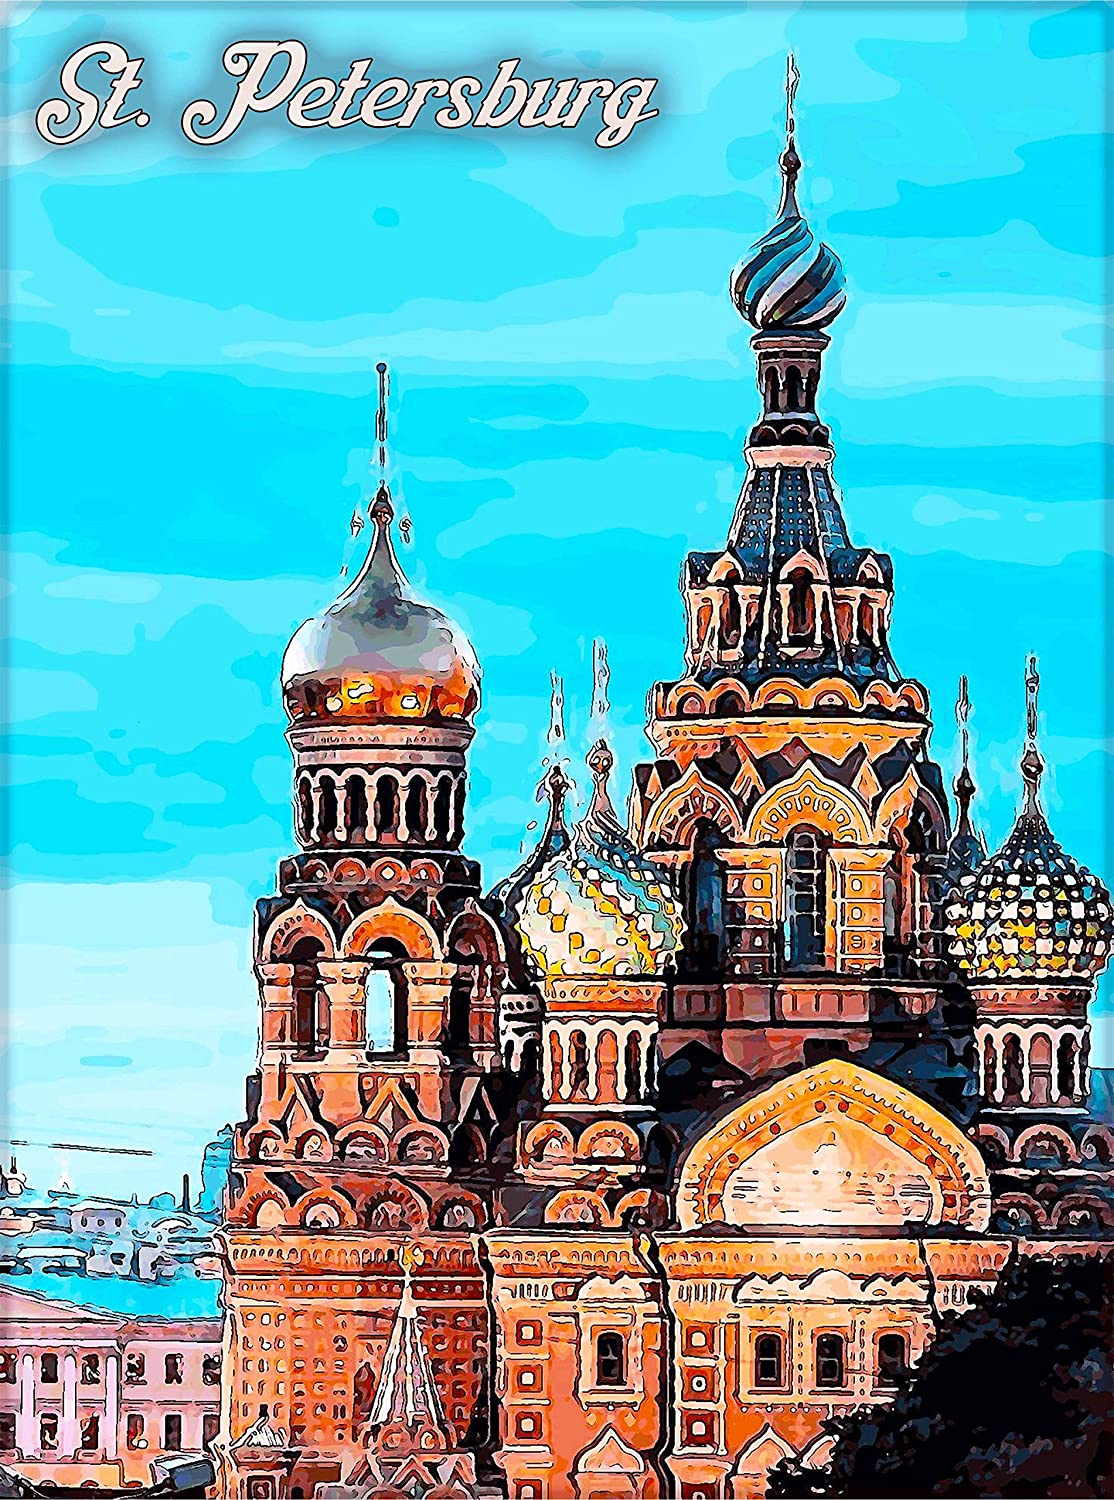 Amazon Com A Slice In Time St Petersburg Ussr Vintage Russia Russian Travel Home Wall Decor Advertisement Art Poster Print 10 X 13 5 Inches Posters Prints